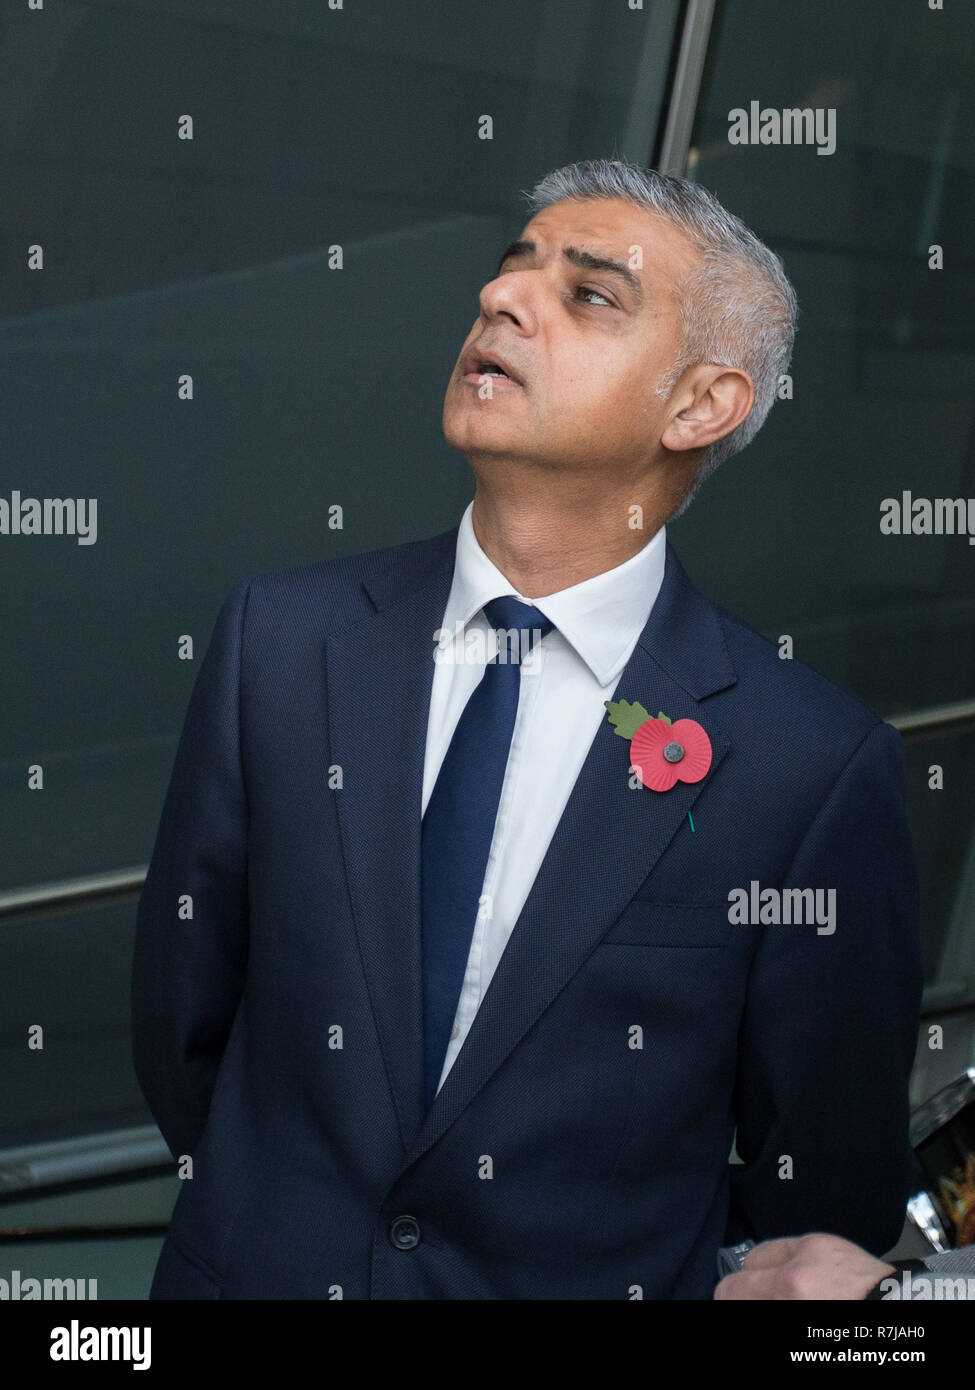 Sadiq Khan unveils the London Remembrance Gallery which contains stories of Londoners wartime memories as well as a permanent memorial.  Tony Arbour AM also delivers a speech on behalf of London Assembly Members.   The London Remembrance Gallery features a scarlet 'cloud' of 48,000 poppies, suspended from the ceiling; the art installation is presented in collaboration with the London Bridge branch of the Royal British Legion.  Featuring: Sadiq Khan Where: London, United Kingdom When: 09 Nov 2018 Credit: Wheatley/WENN - Stock Image